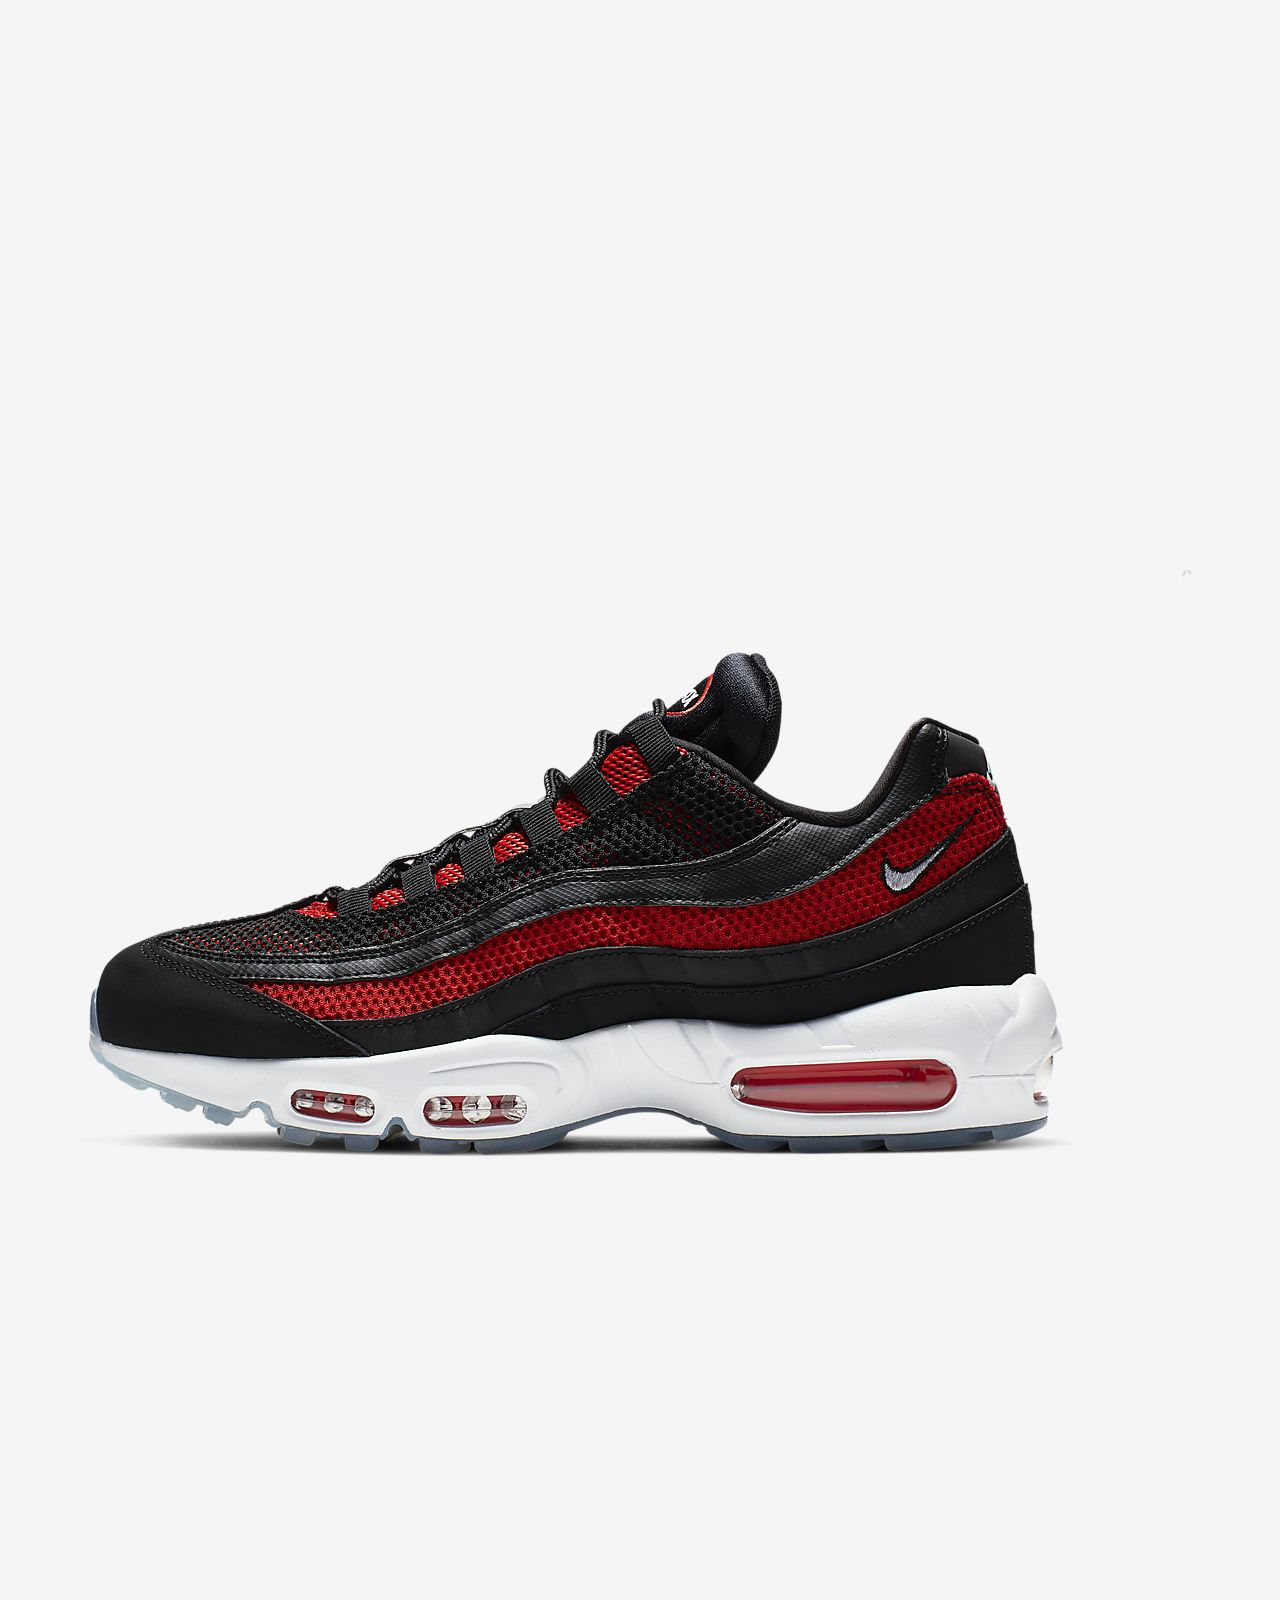 innovative design 3706e 45af6 Men s Shoe. Nike Air Max 95 Essential